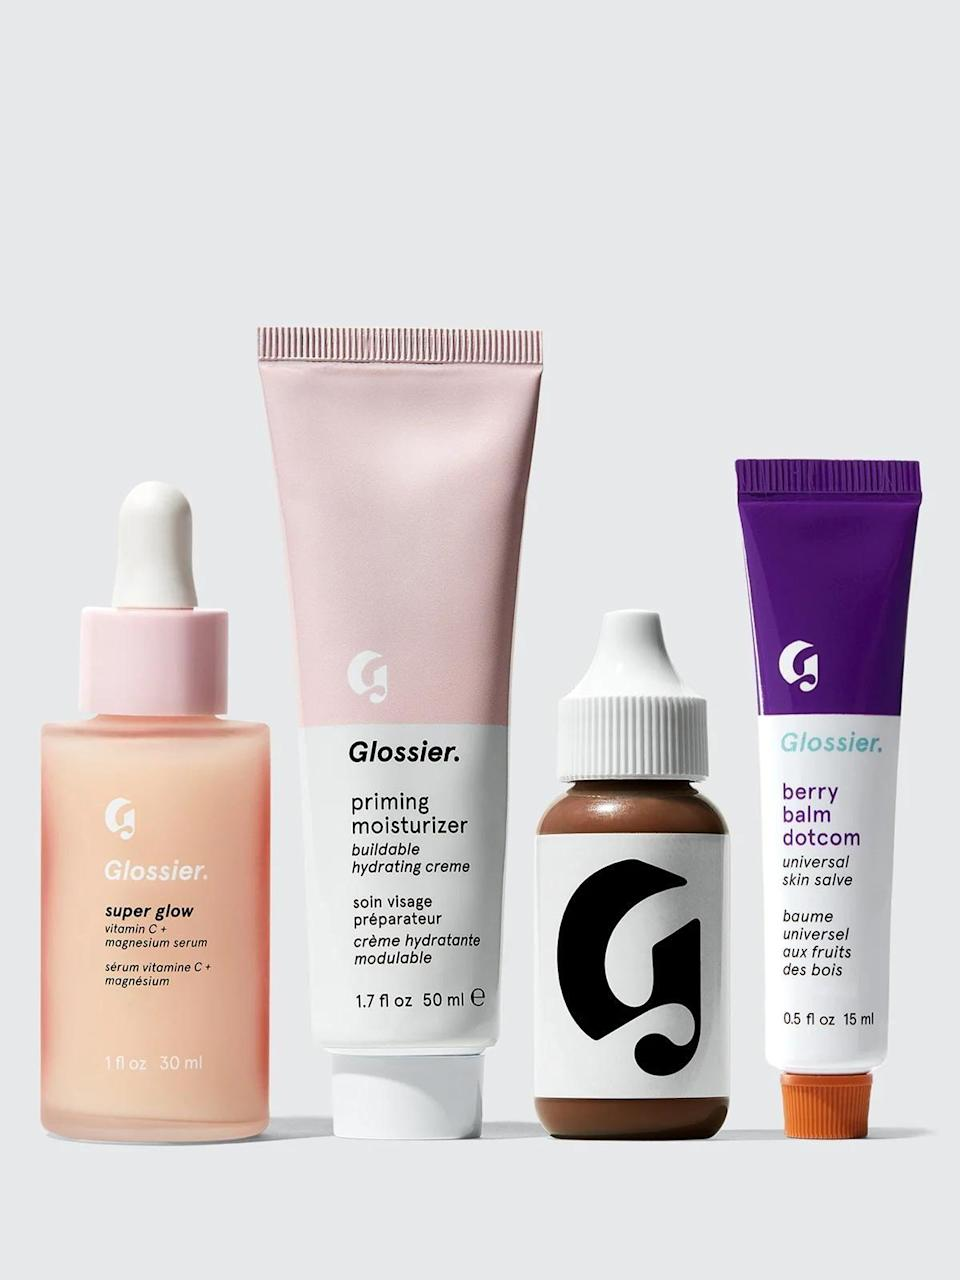 "<p><strong>Glossier</strong></p><p>glossier.com</p><p><a href=""https://go.redirectingat.com?id=74968X1596630&url=https%3A%2F%2Fwww.glossier.com%2Fproducts%2Fspecial-3-perfect-canvas-set&sref=https%3A%2F%2Fwww.bestproducts.com%2Flifestyle%2Fg34618159%2Fblack-friday-cyber-monday-deals-2020%2F"" rel=""nofollow noopener"" target=""_blank"" data-ylk=""slk:Shop Now"" class=""link rapid-noclick-resp"">Shop Now</a></p><p><strong><del>$88</del> $54.75 (38% off) </strong></p><p>Everything you need to recreate that coveted minimal no-makeup makeup look is in this four step full-size set from Glossier. Start with the brand's Super Glow Vitamin C serum to wake up your skin, then layer on their 2-in-1 Priming Moisturizer for a surge of hydration. Add a dab of sheer Perfecting Skin Tint in a tone of your choice, and finish off your look with their cult favorite nourishing lip balm, Balm Dotcom.</p>"